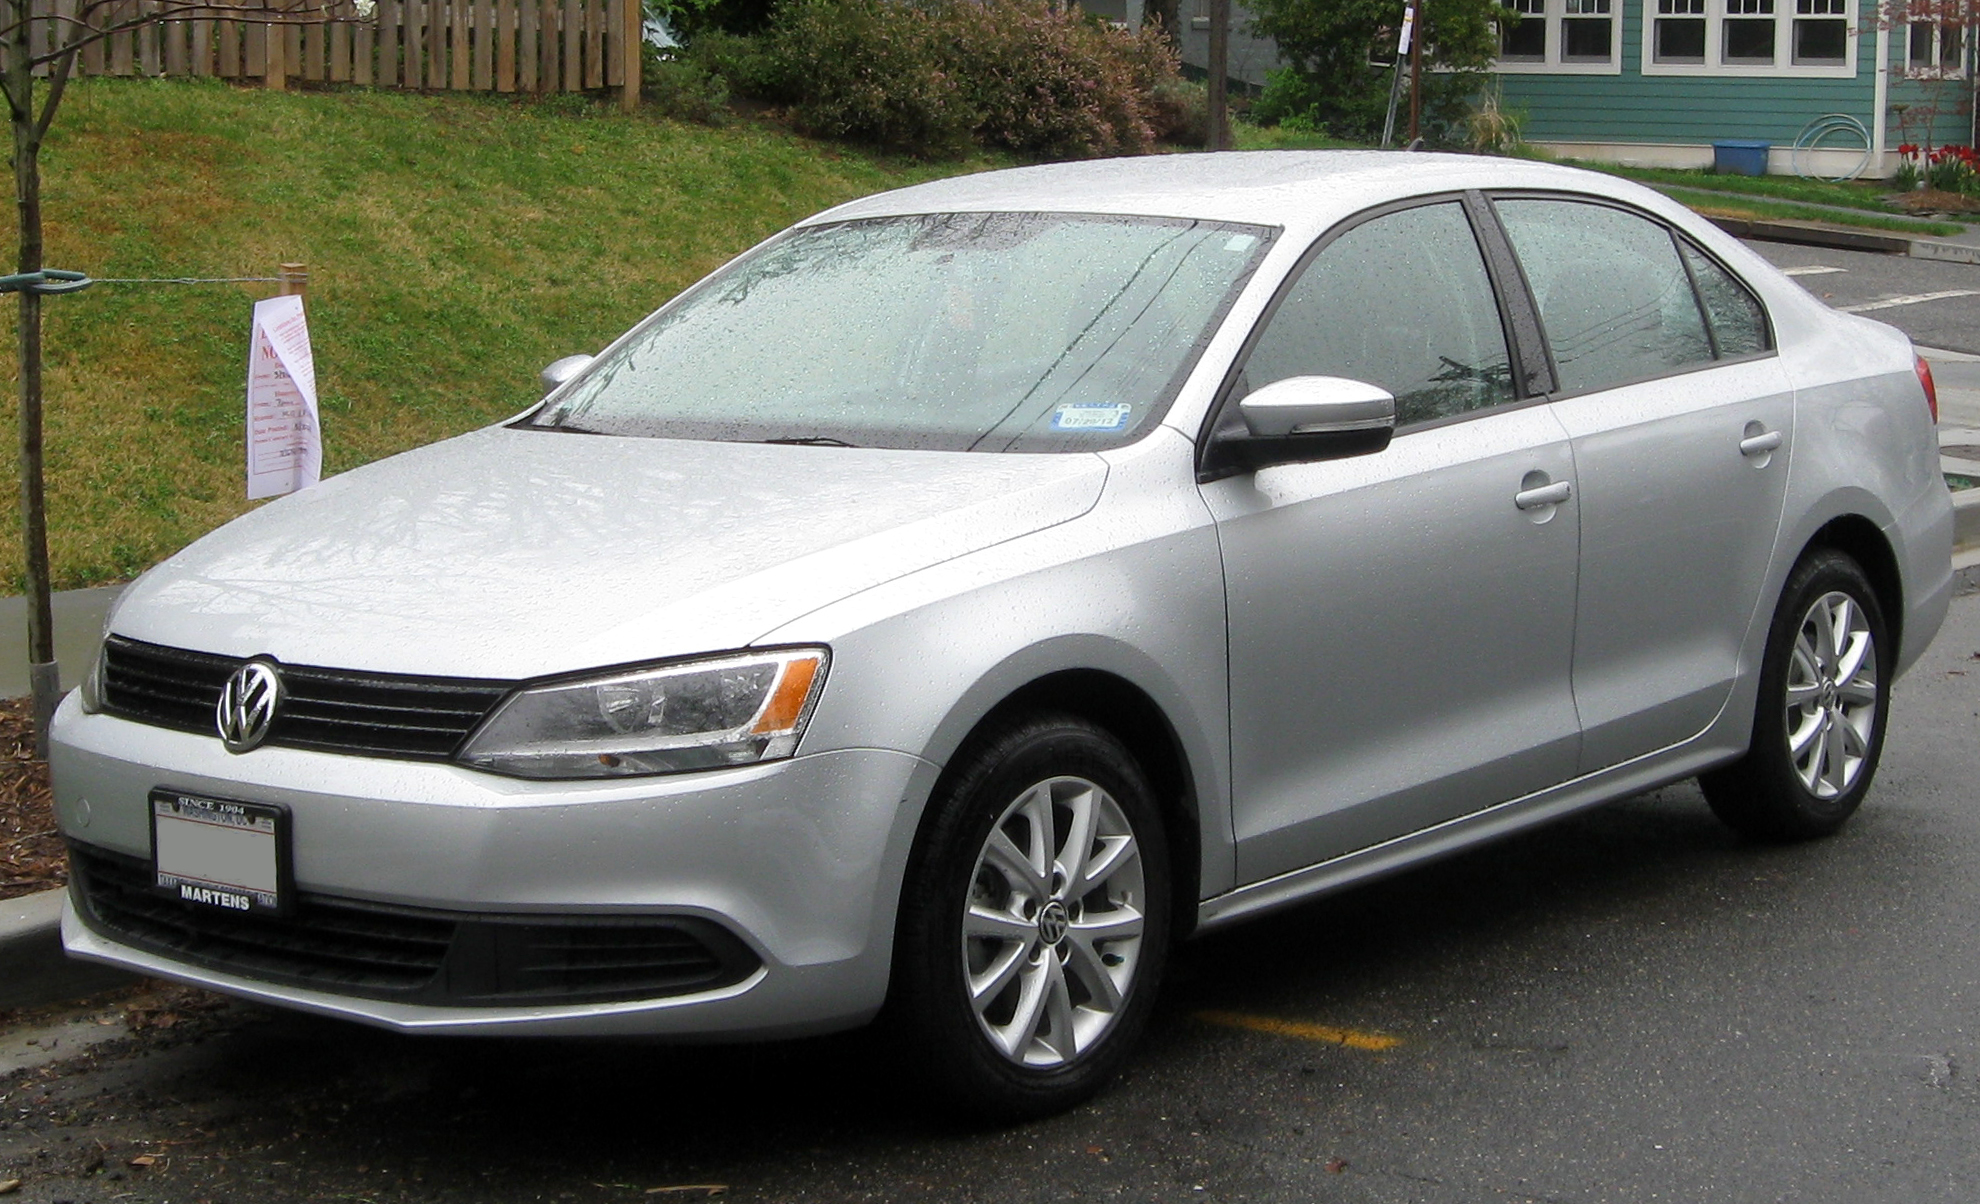 Volkswagen Jetta sedan Wallpapers HD Wallpaper